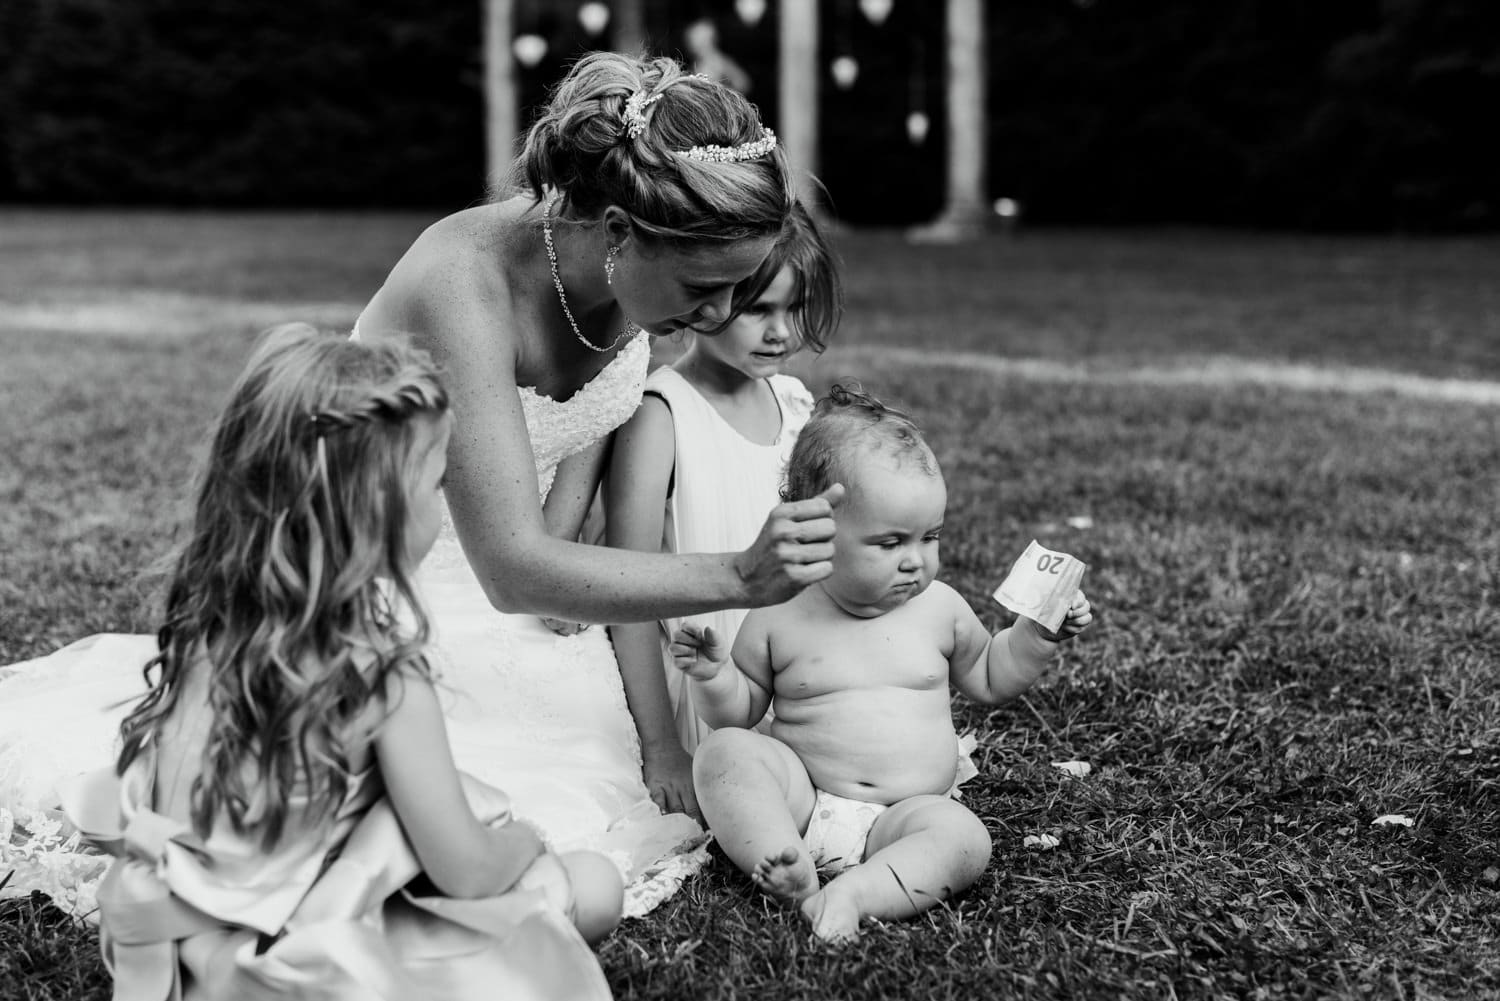 baby holding money at wedding